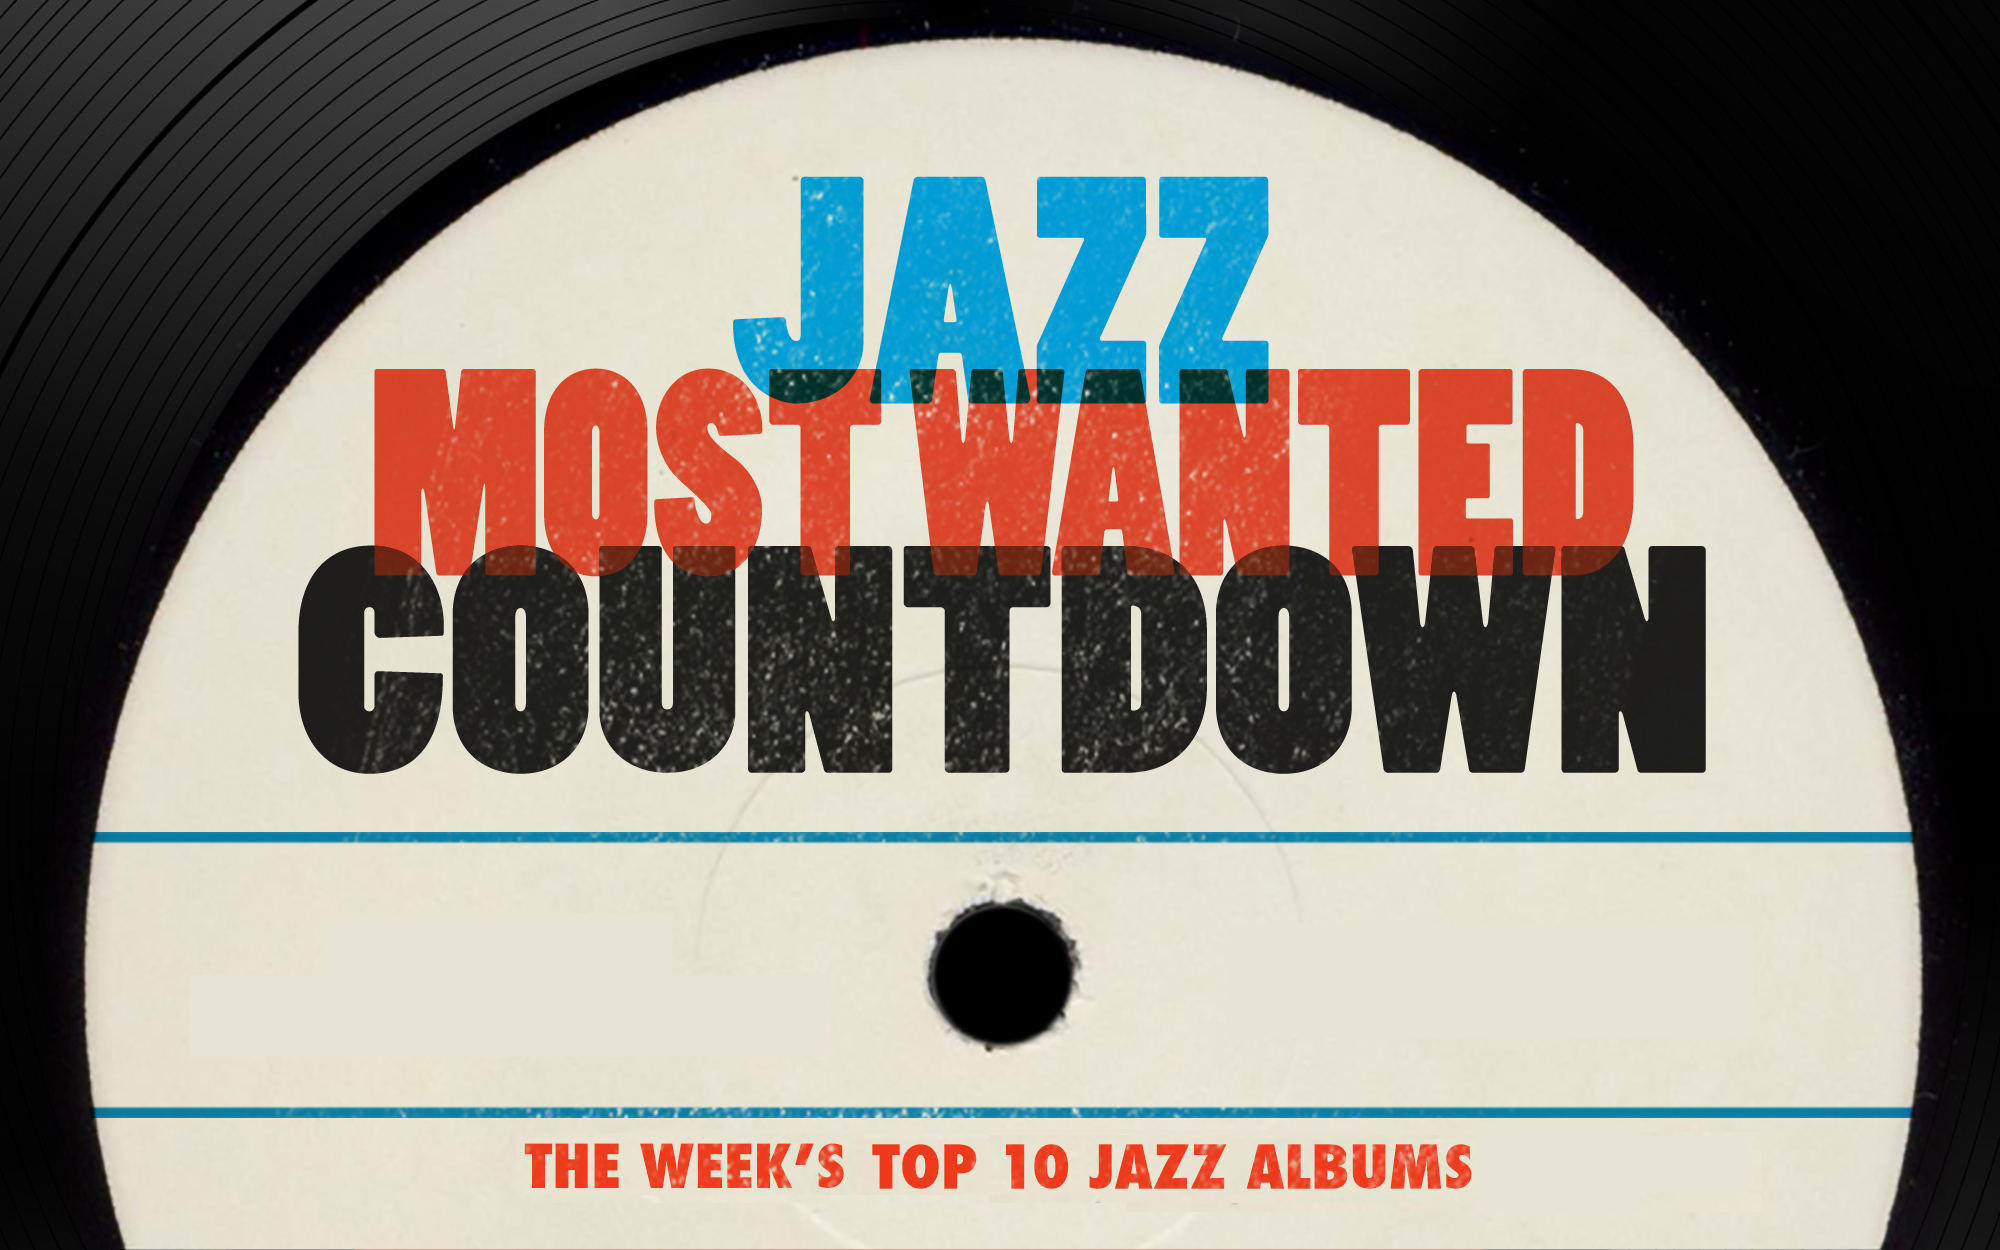 Caption: Jazz Most Wanted